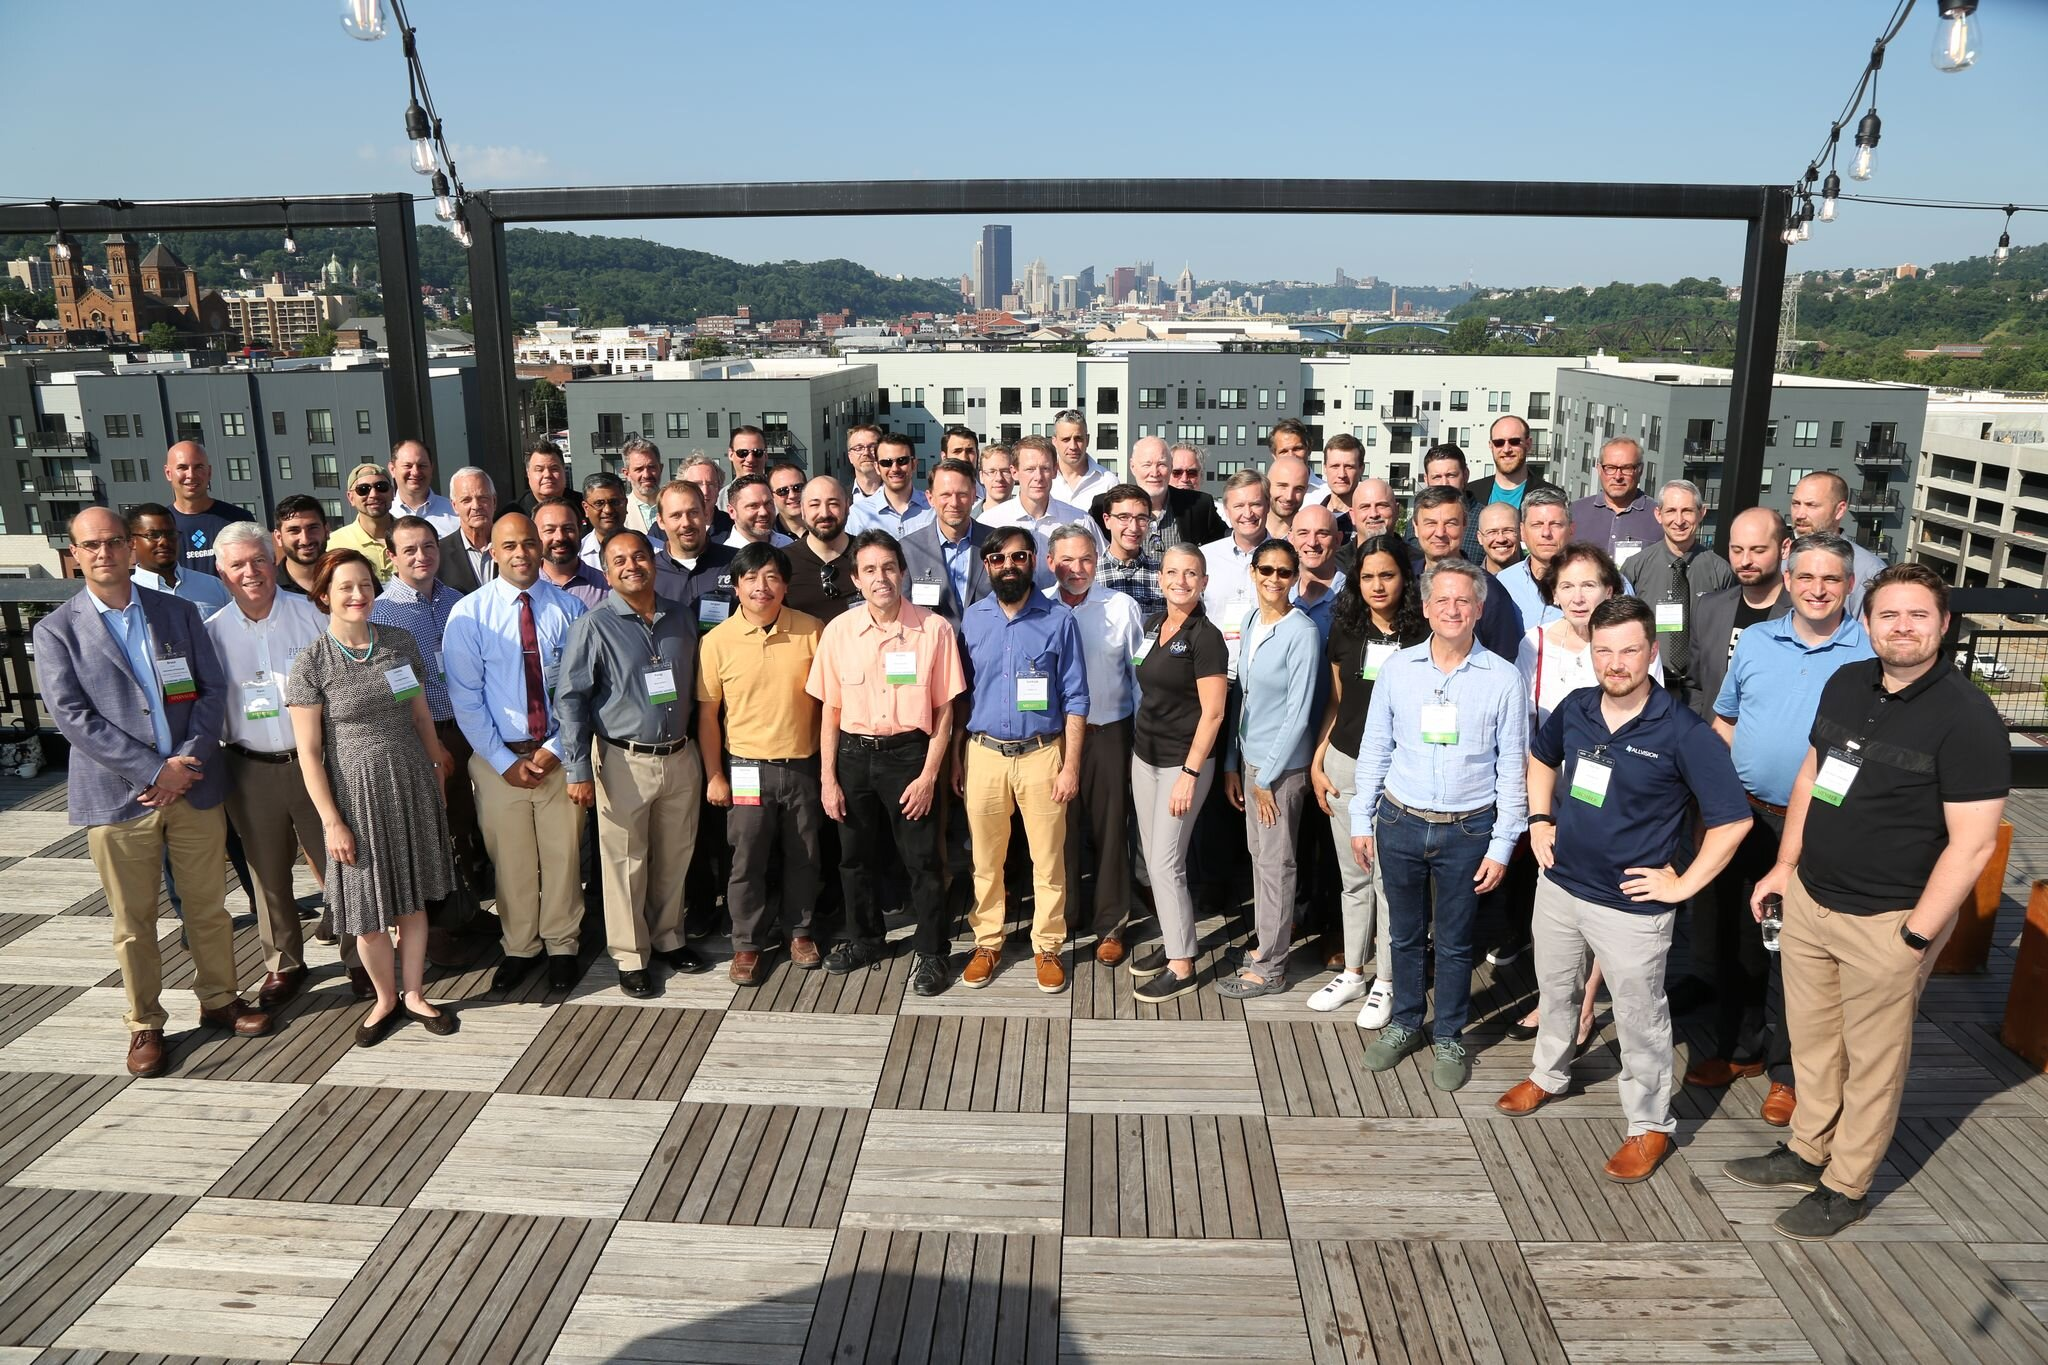 Robotics/AI Industry Leaders Announce Commitment to Make Pittsburgh the 'Robotics Capital of the World'